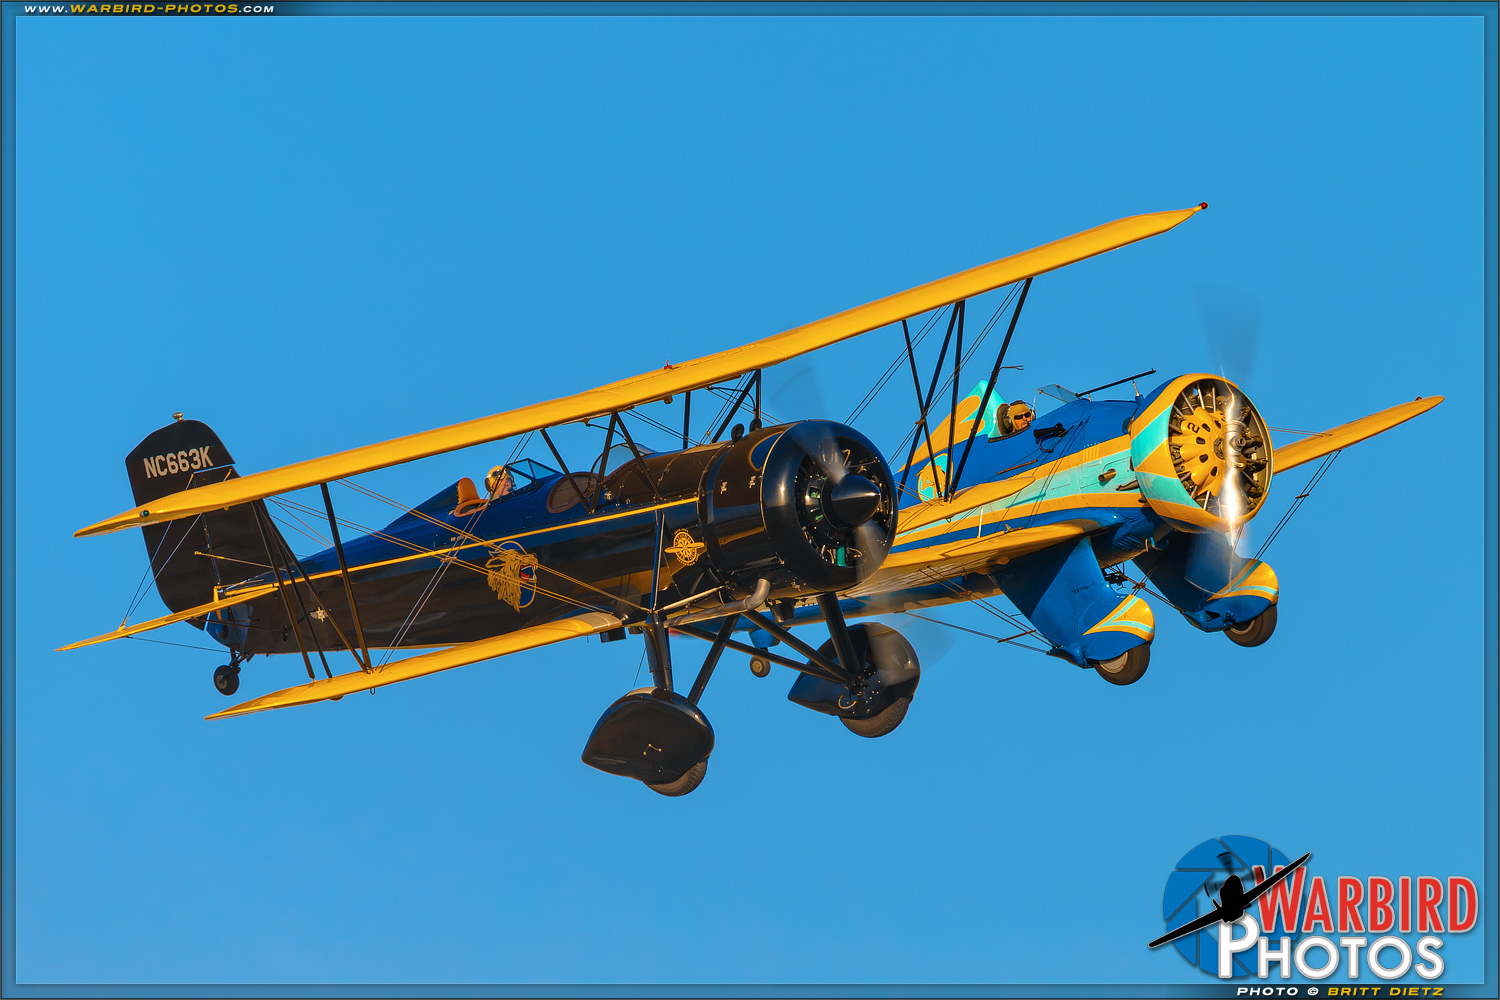 Stearman4E Speedmail   &  P-26A Peashooter - Planes of Fame Airshow 2016 Day 1 Photo Gallery